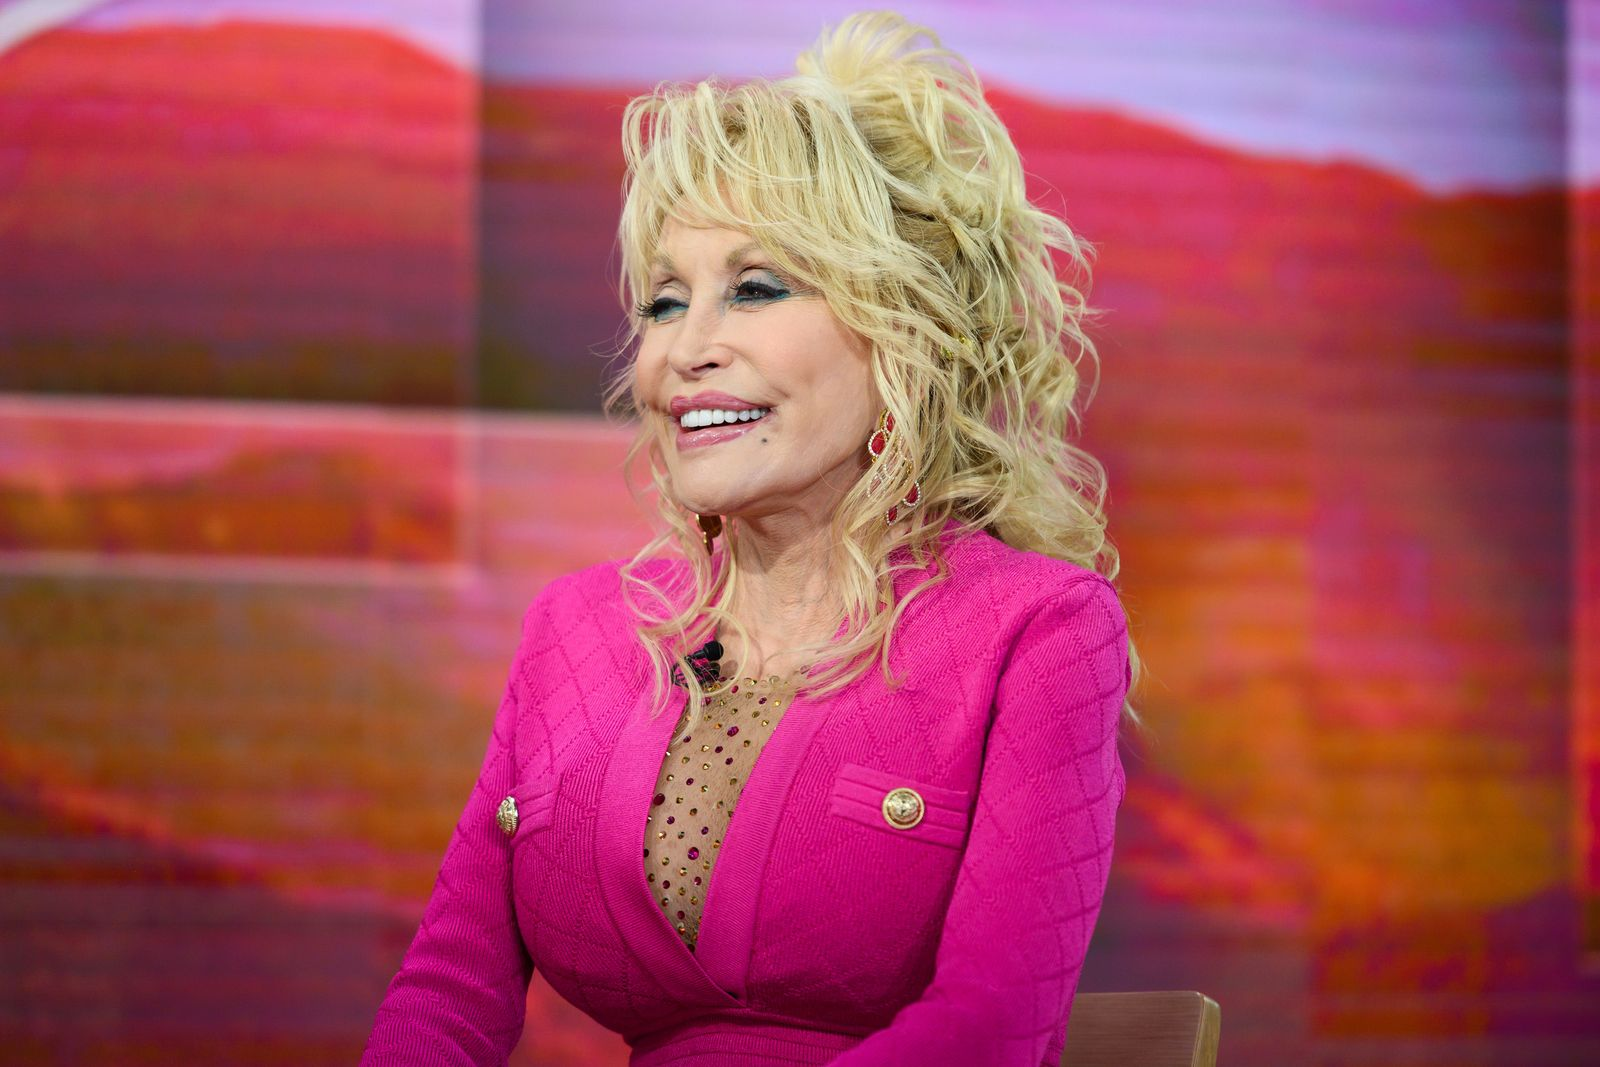 Dolly Parton at Today - Season 68 on Wednesday, November 20, 2019 | Photo: Getty Images